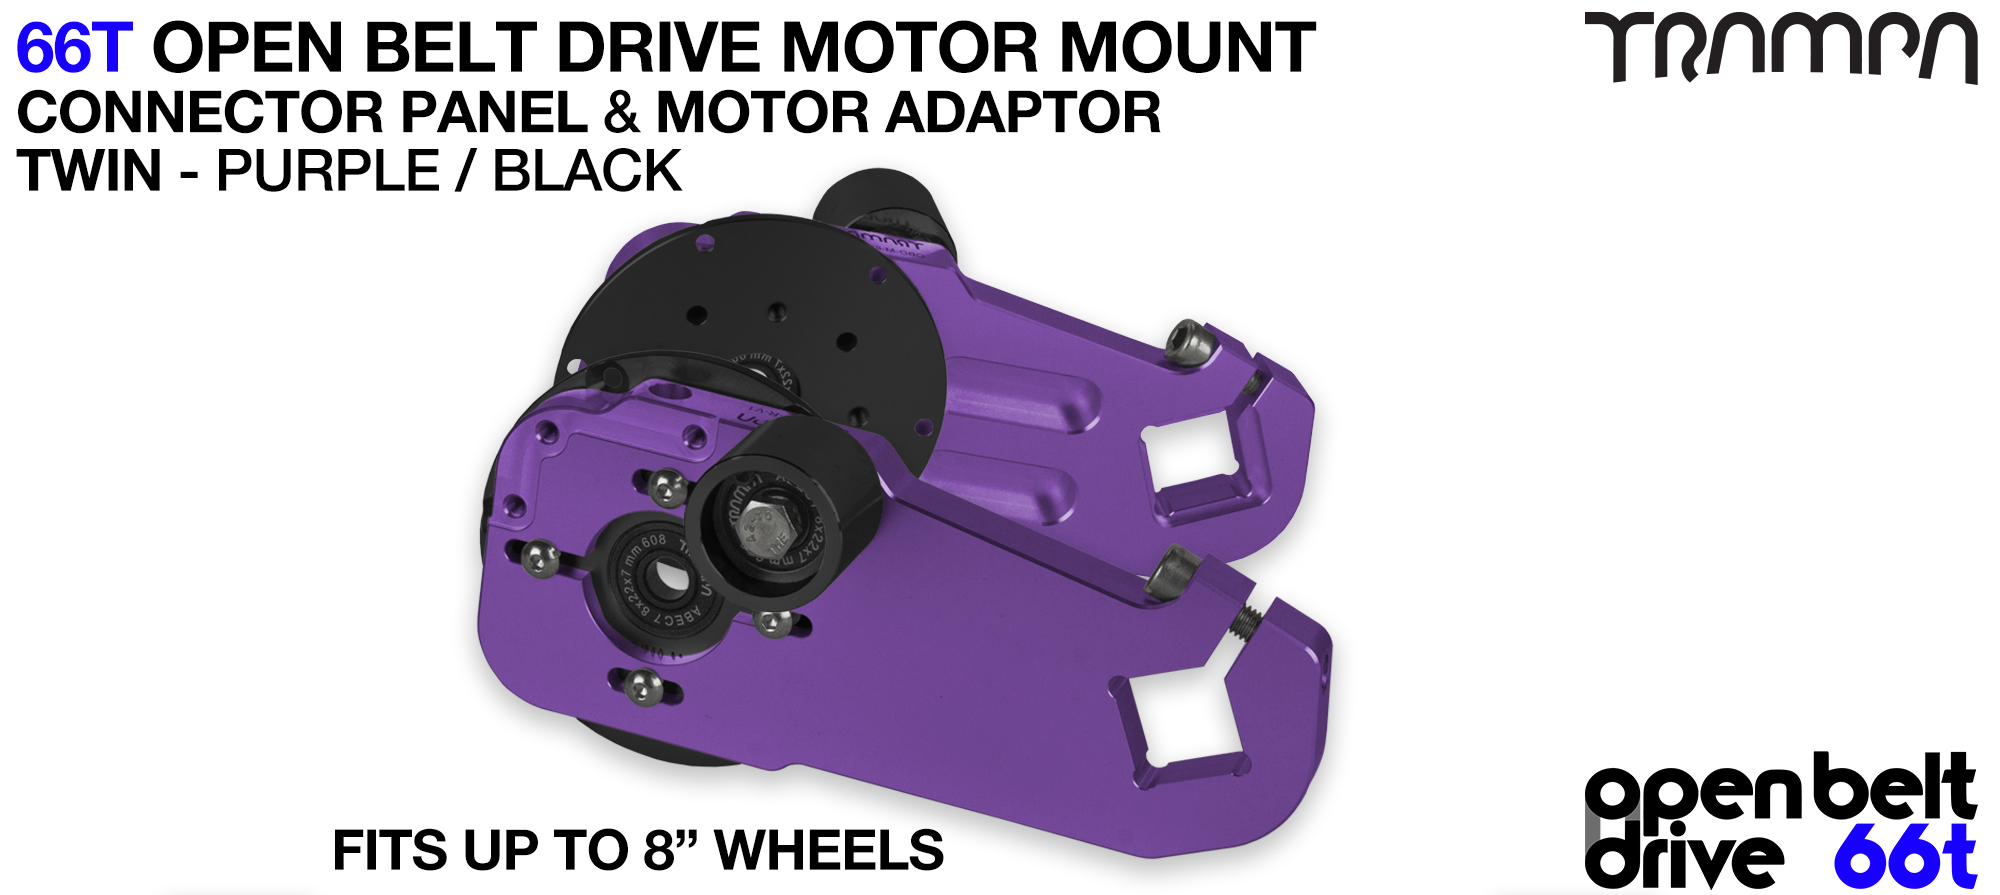 66T OPEN BELT DRIVE Motor Mount & Motor Adaptor - TWIN PURPLE